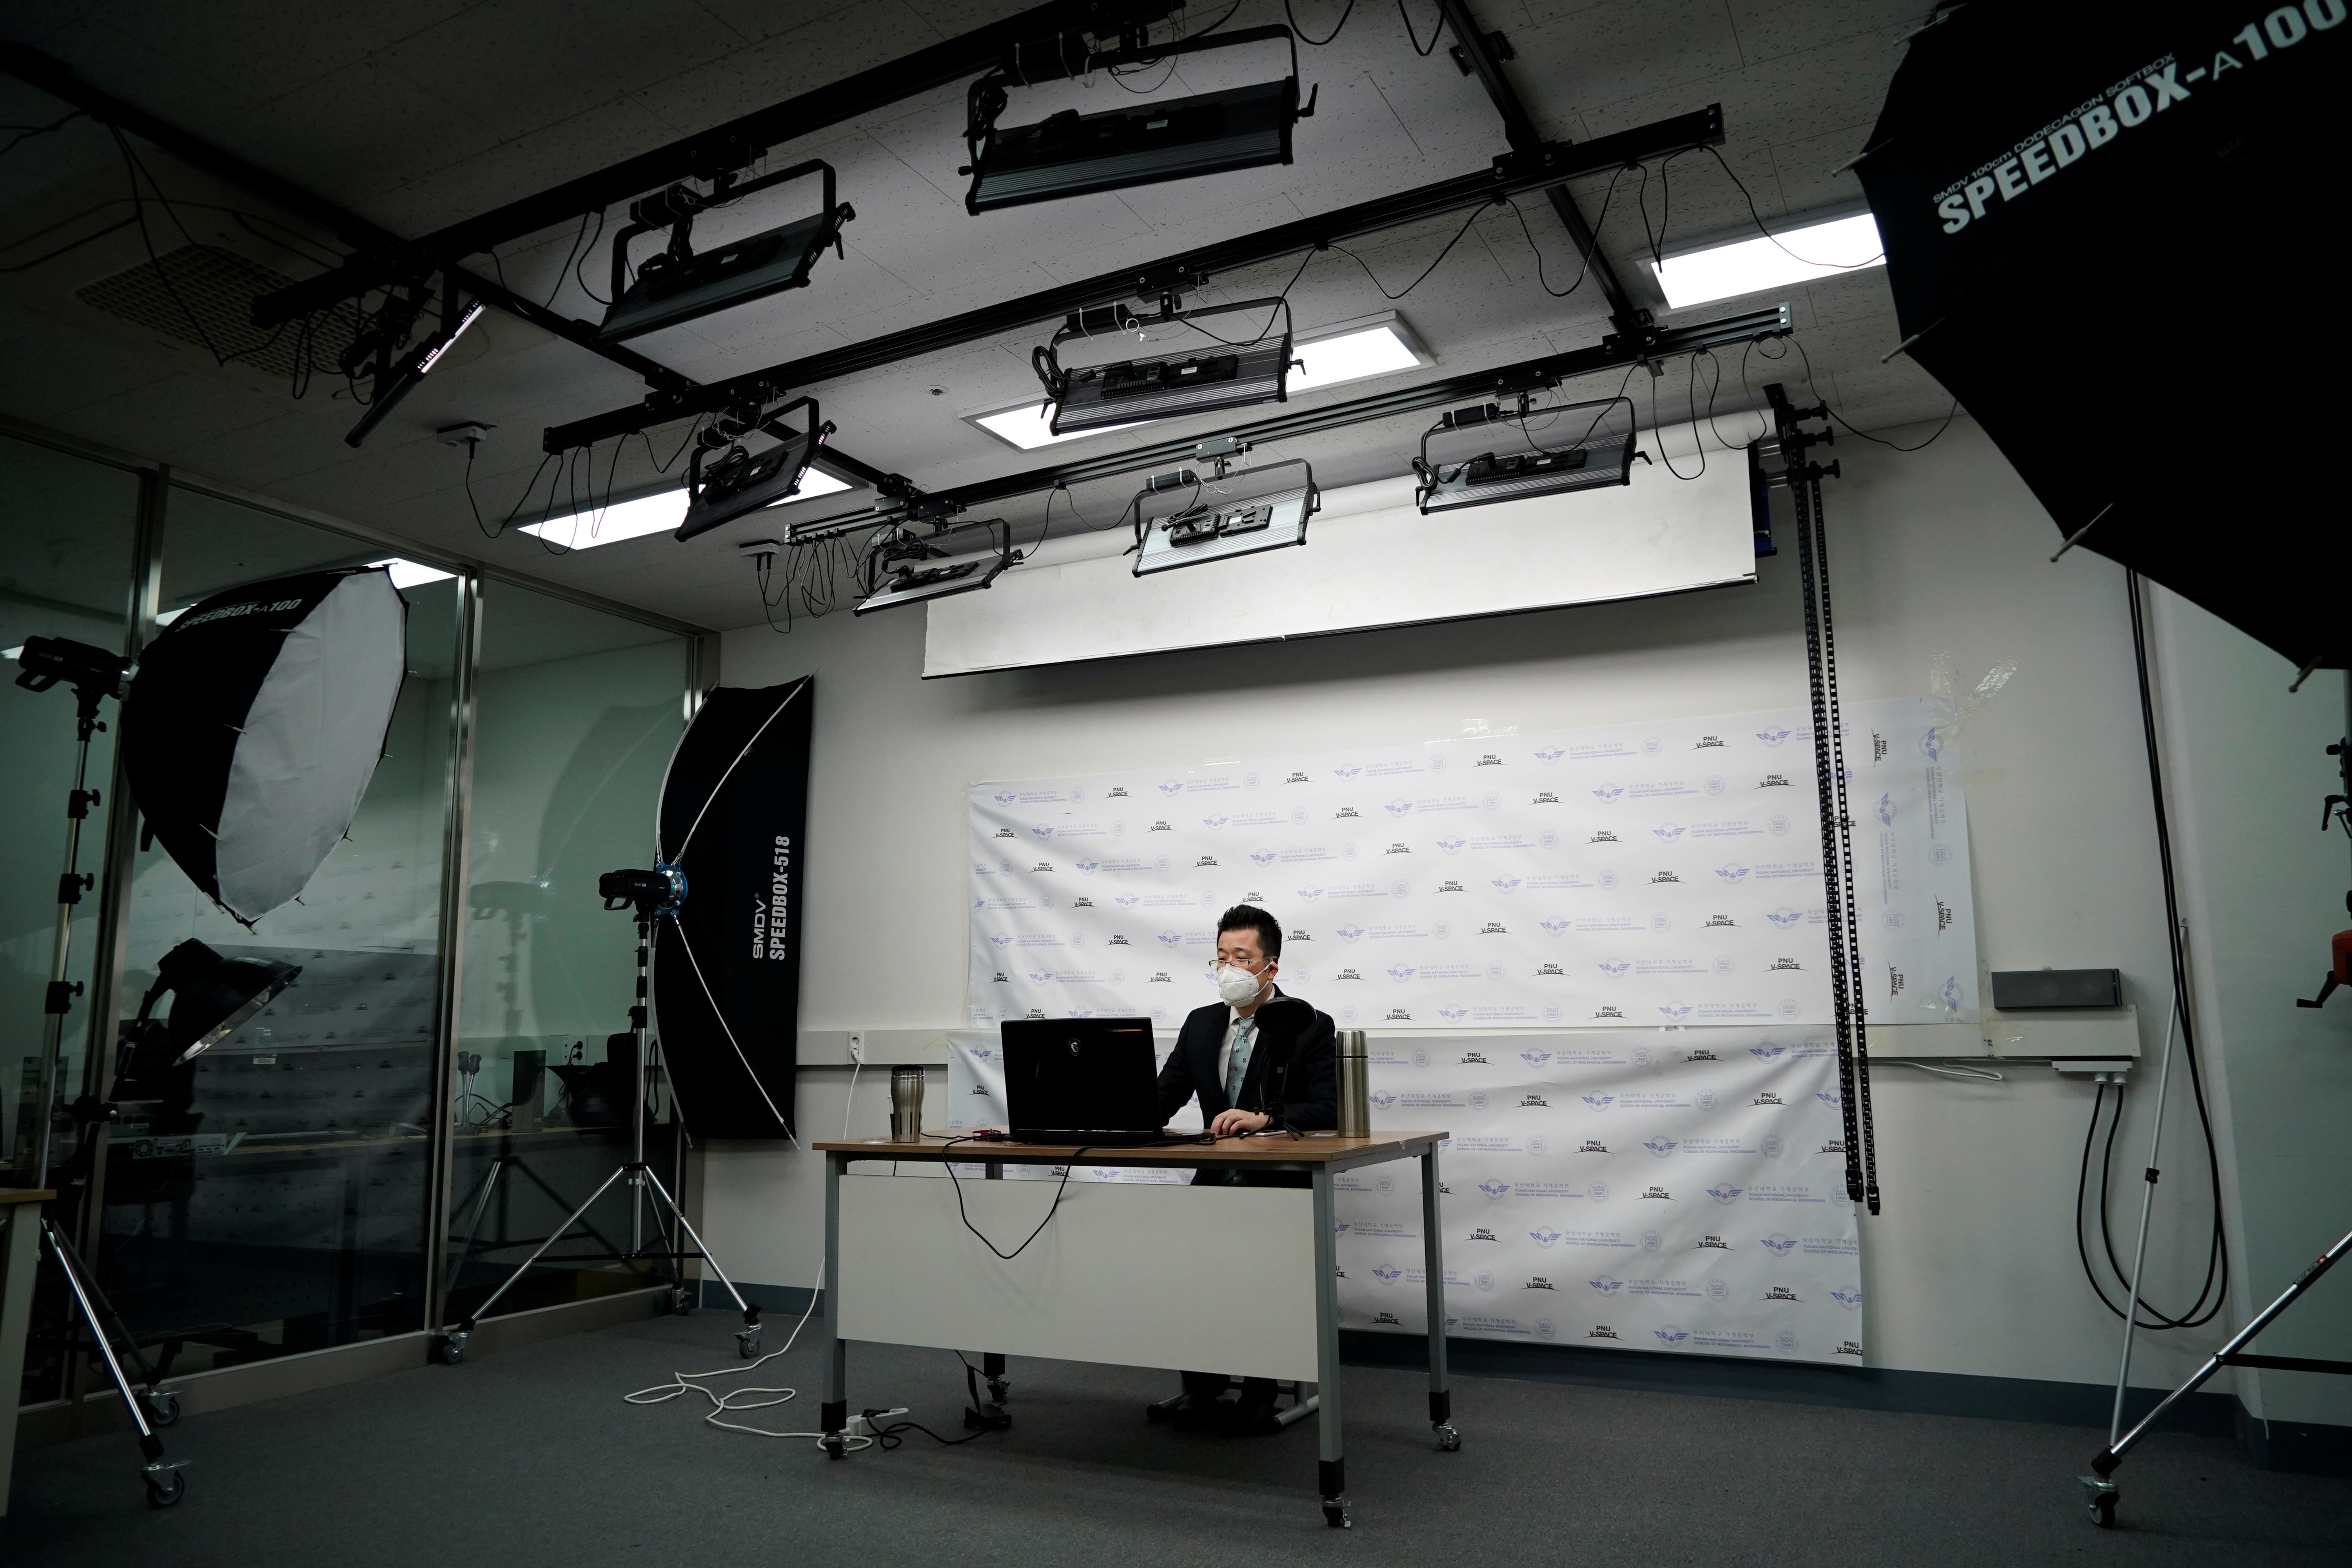 A professor of Pusan National University Park Hyun who used to be a coronavirus patient, gives an online lecture at Pusan National University in Busan, South Korea, March 30, 2020.